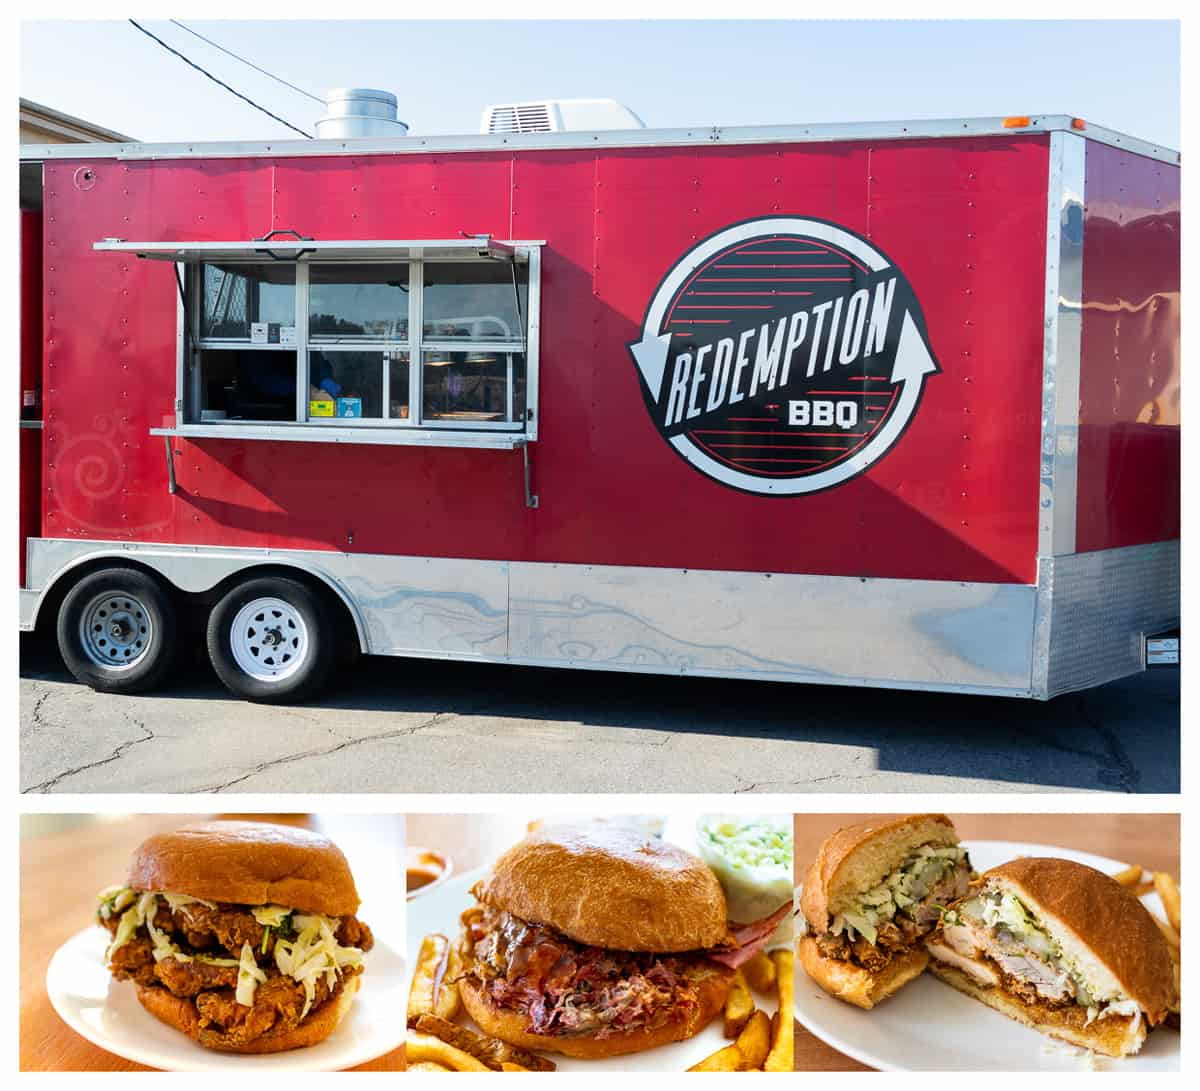 Redemption BBQ food truck and sandwiches